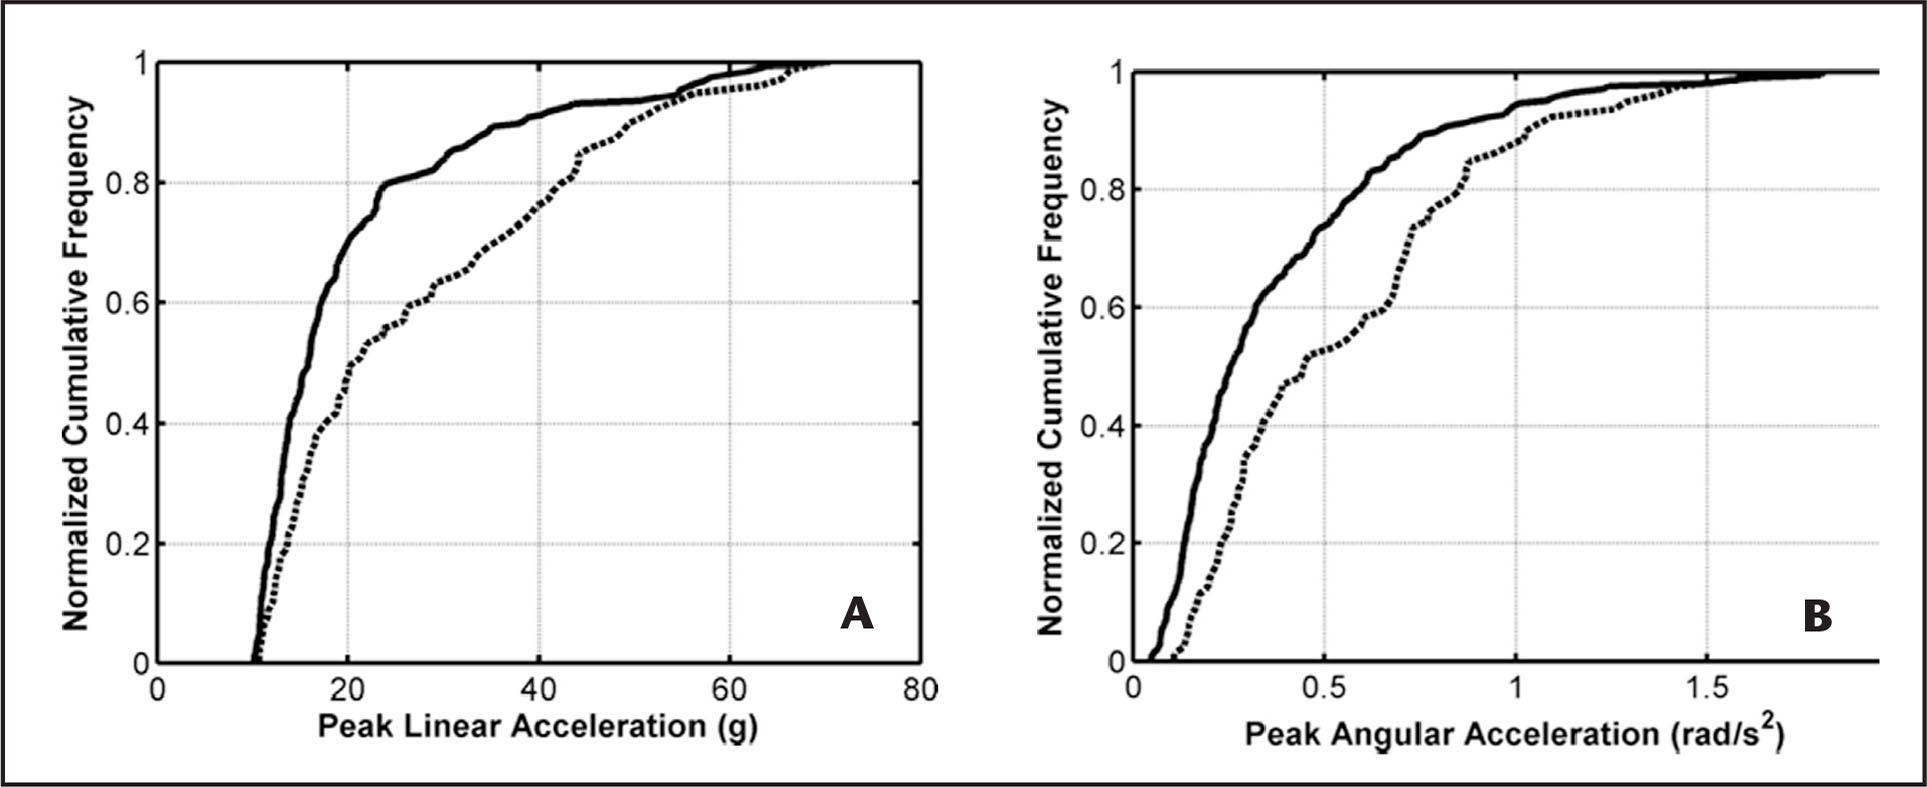 Empirical cumulative distribution functions for data collected from male (dashed) and female (solid) participants. Vertical axes show the normalized cumulative frequency associated with (A) peak linear and (B) peak angular accelerations.